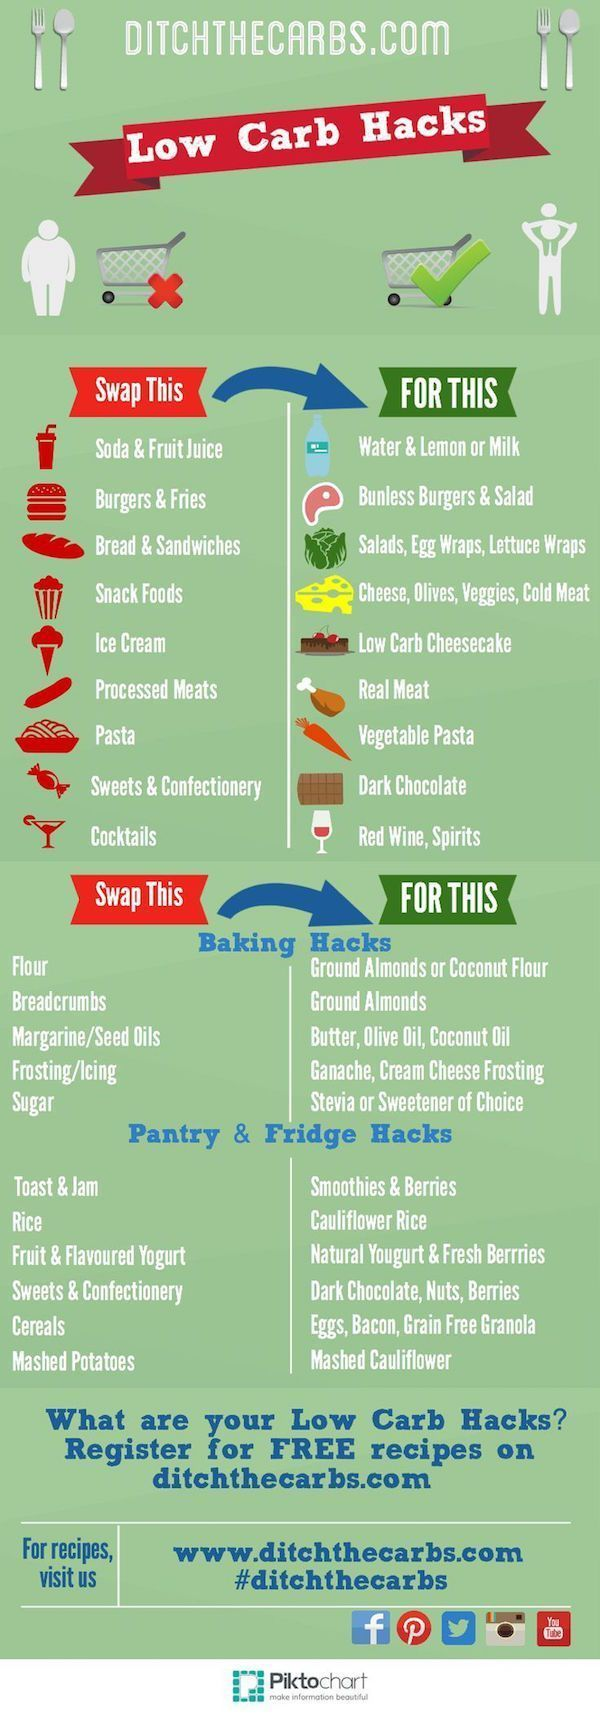 Find The Best Diet Plan For Your Wedding -via Ditch The Carbs